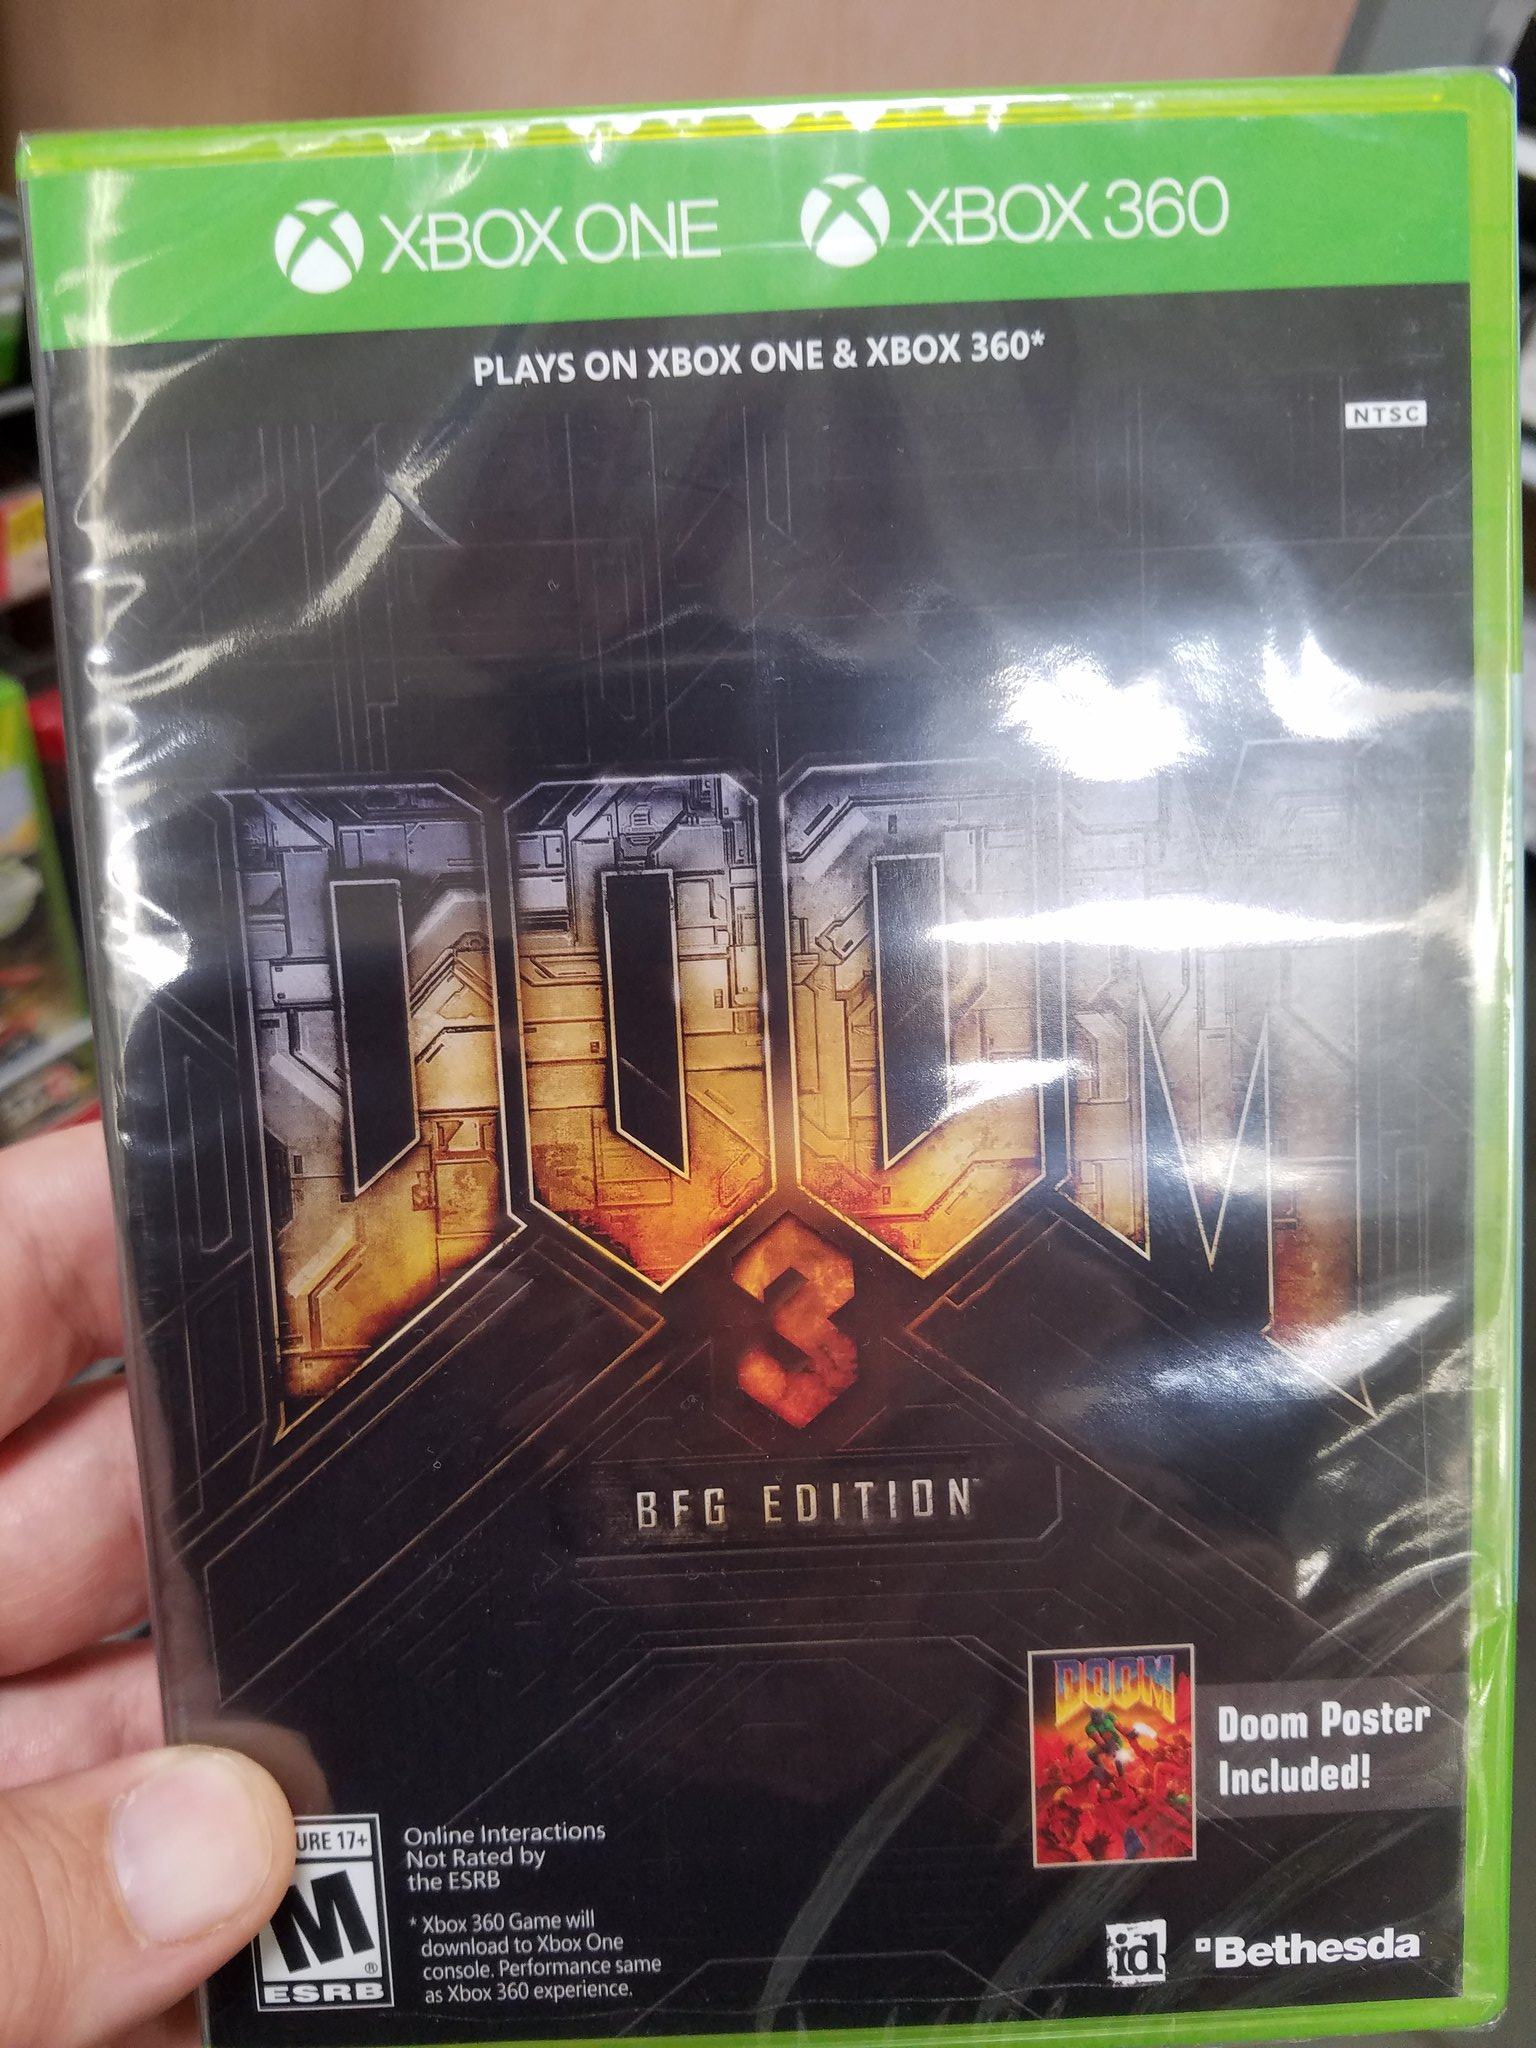 Xbox 360 Backwards Compatible Games Are Getting Reprinted Sold At